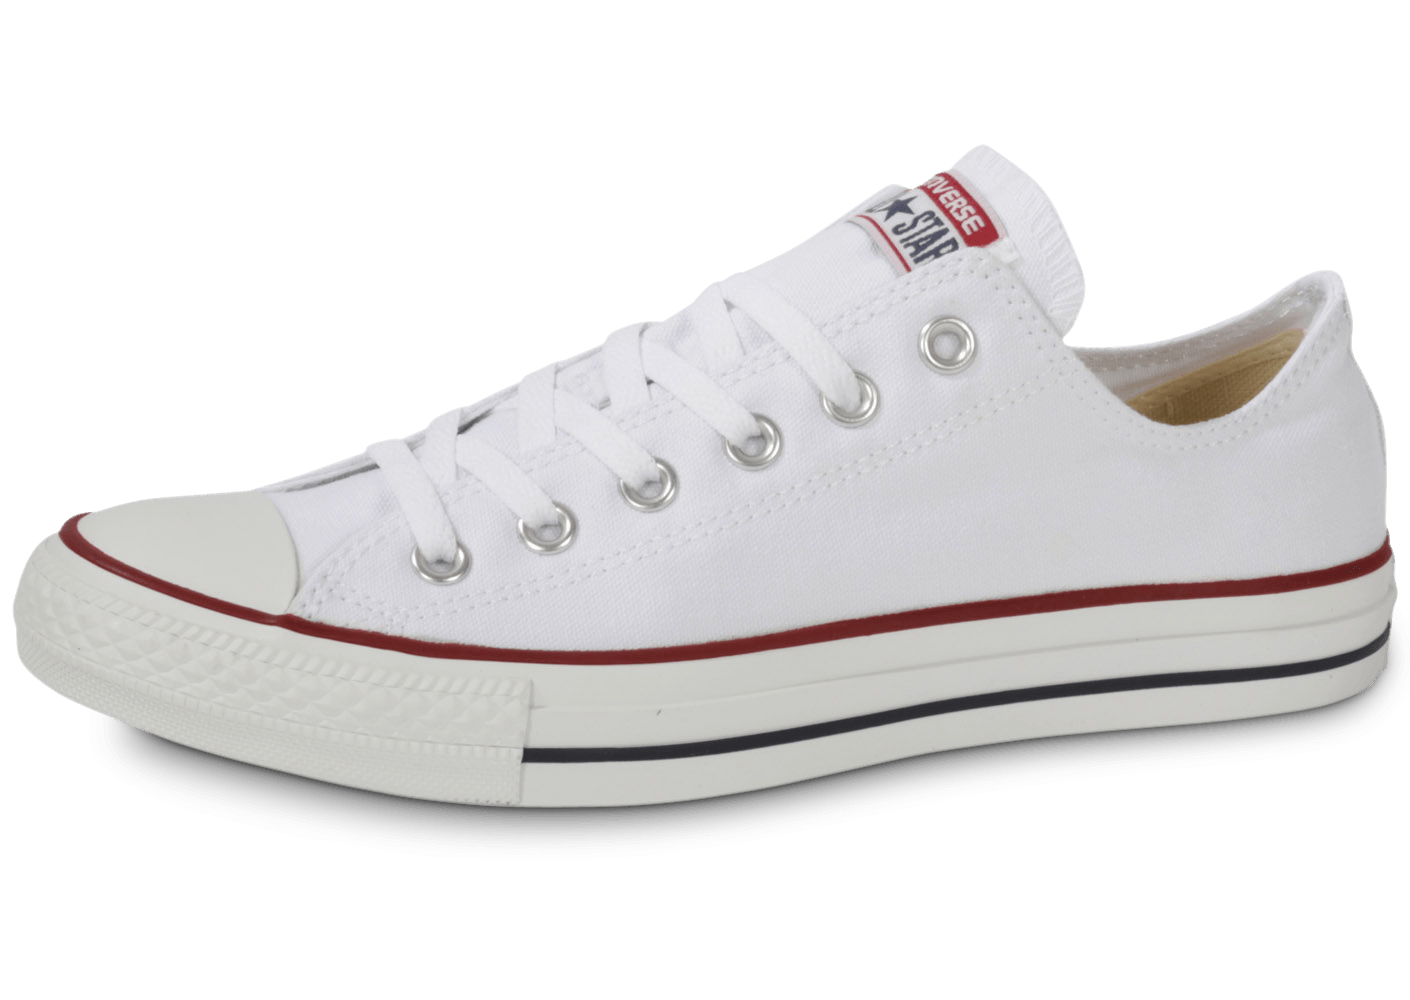 Chaussures Converse All Star blanches Casual femme GzhmB3P25m